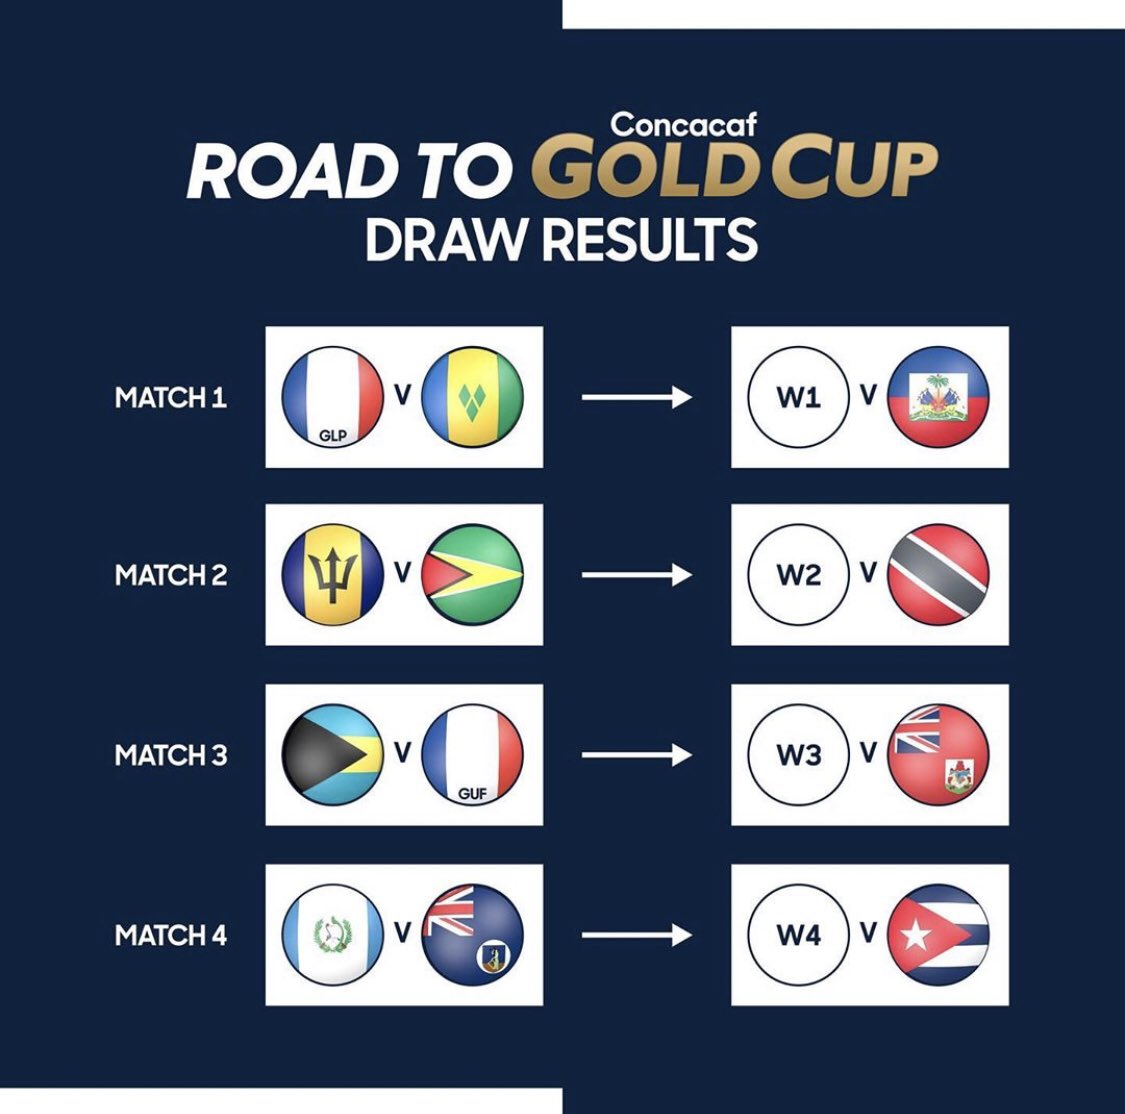 The road is set to the 2021 @GoldCup 🇬🇾🙏🏽